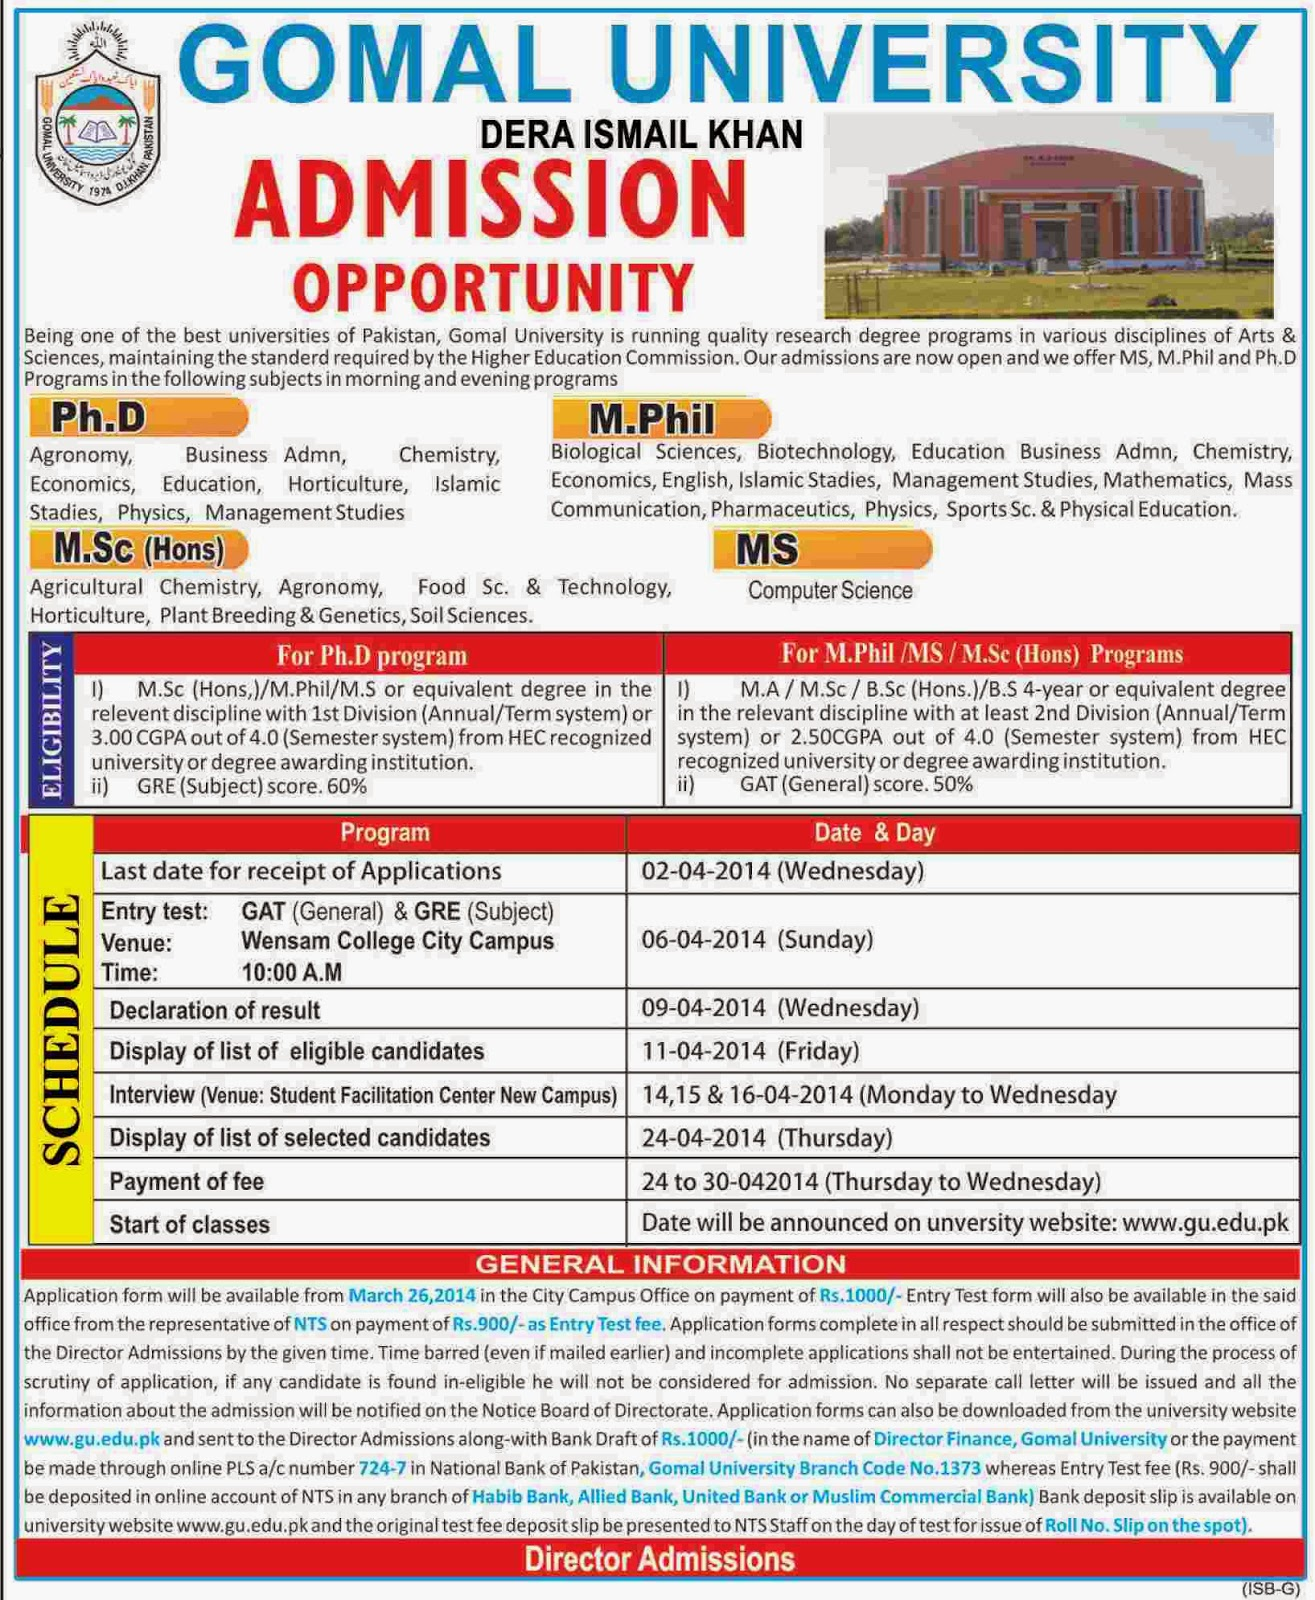 Gomal University Dera Ismail Khan Admission Open 2014